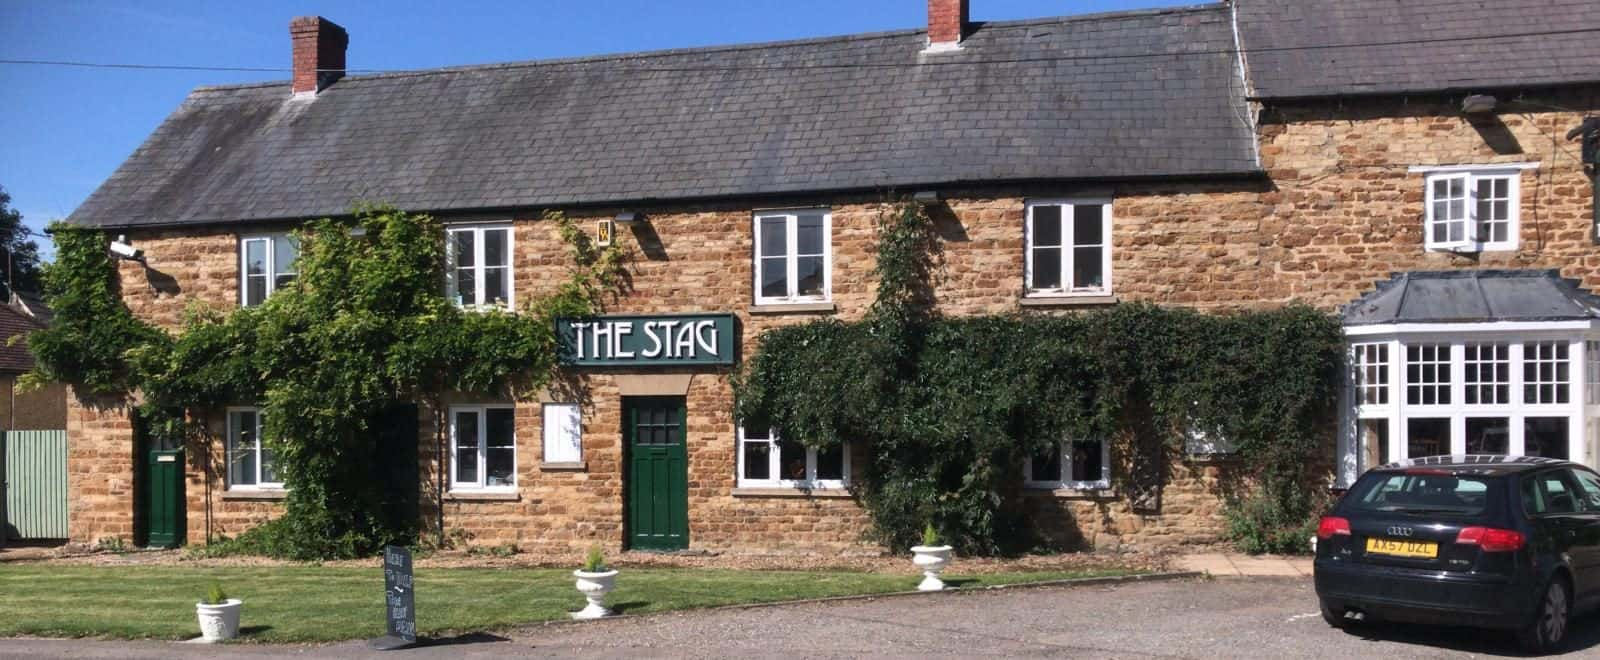 Stag Maidwell frontage